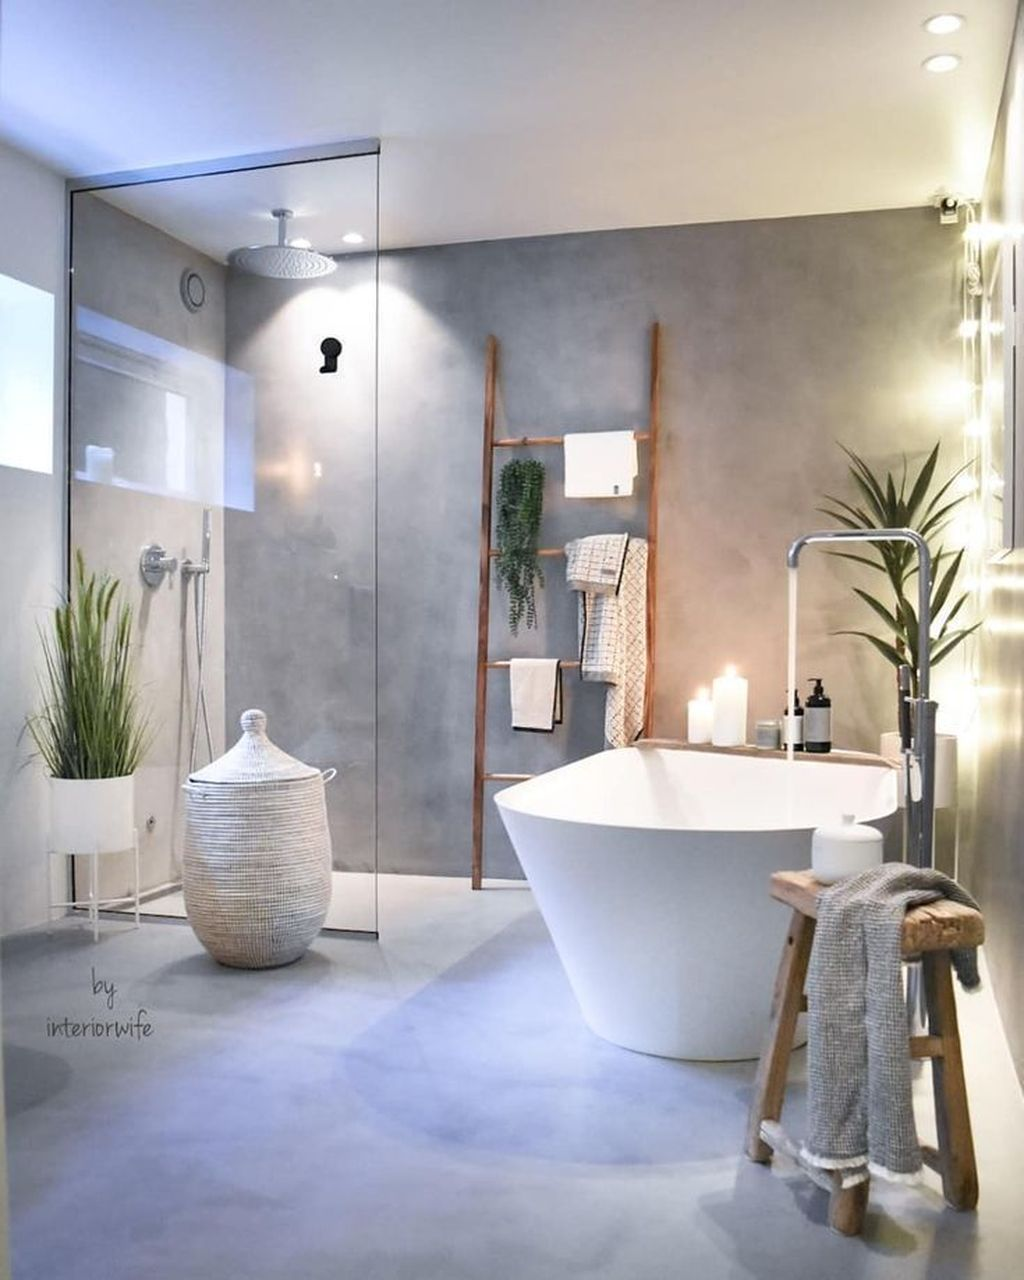 Inspiring Bathroom Interior Design Ideas 18